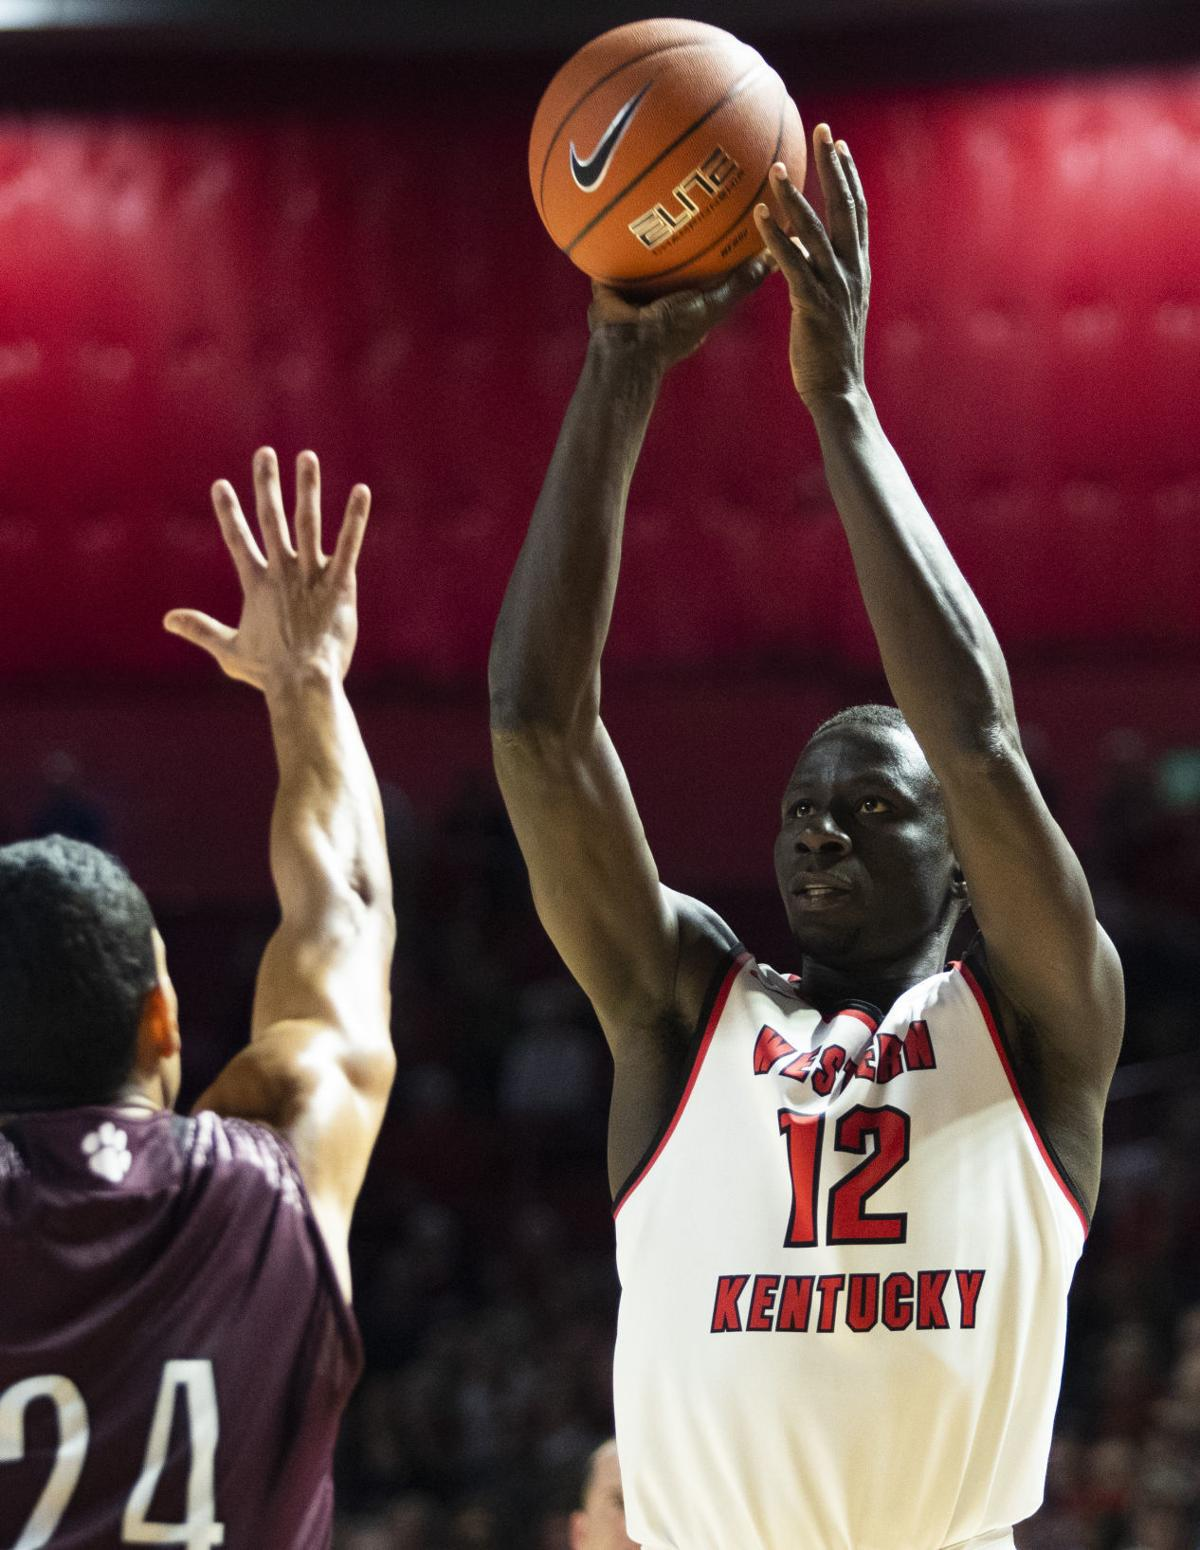 WKU defeats Campbellsville University